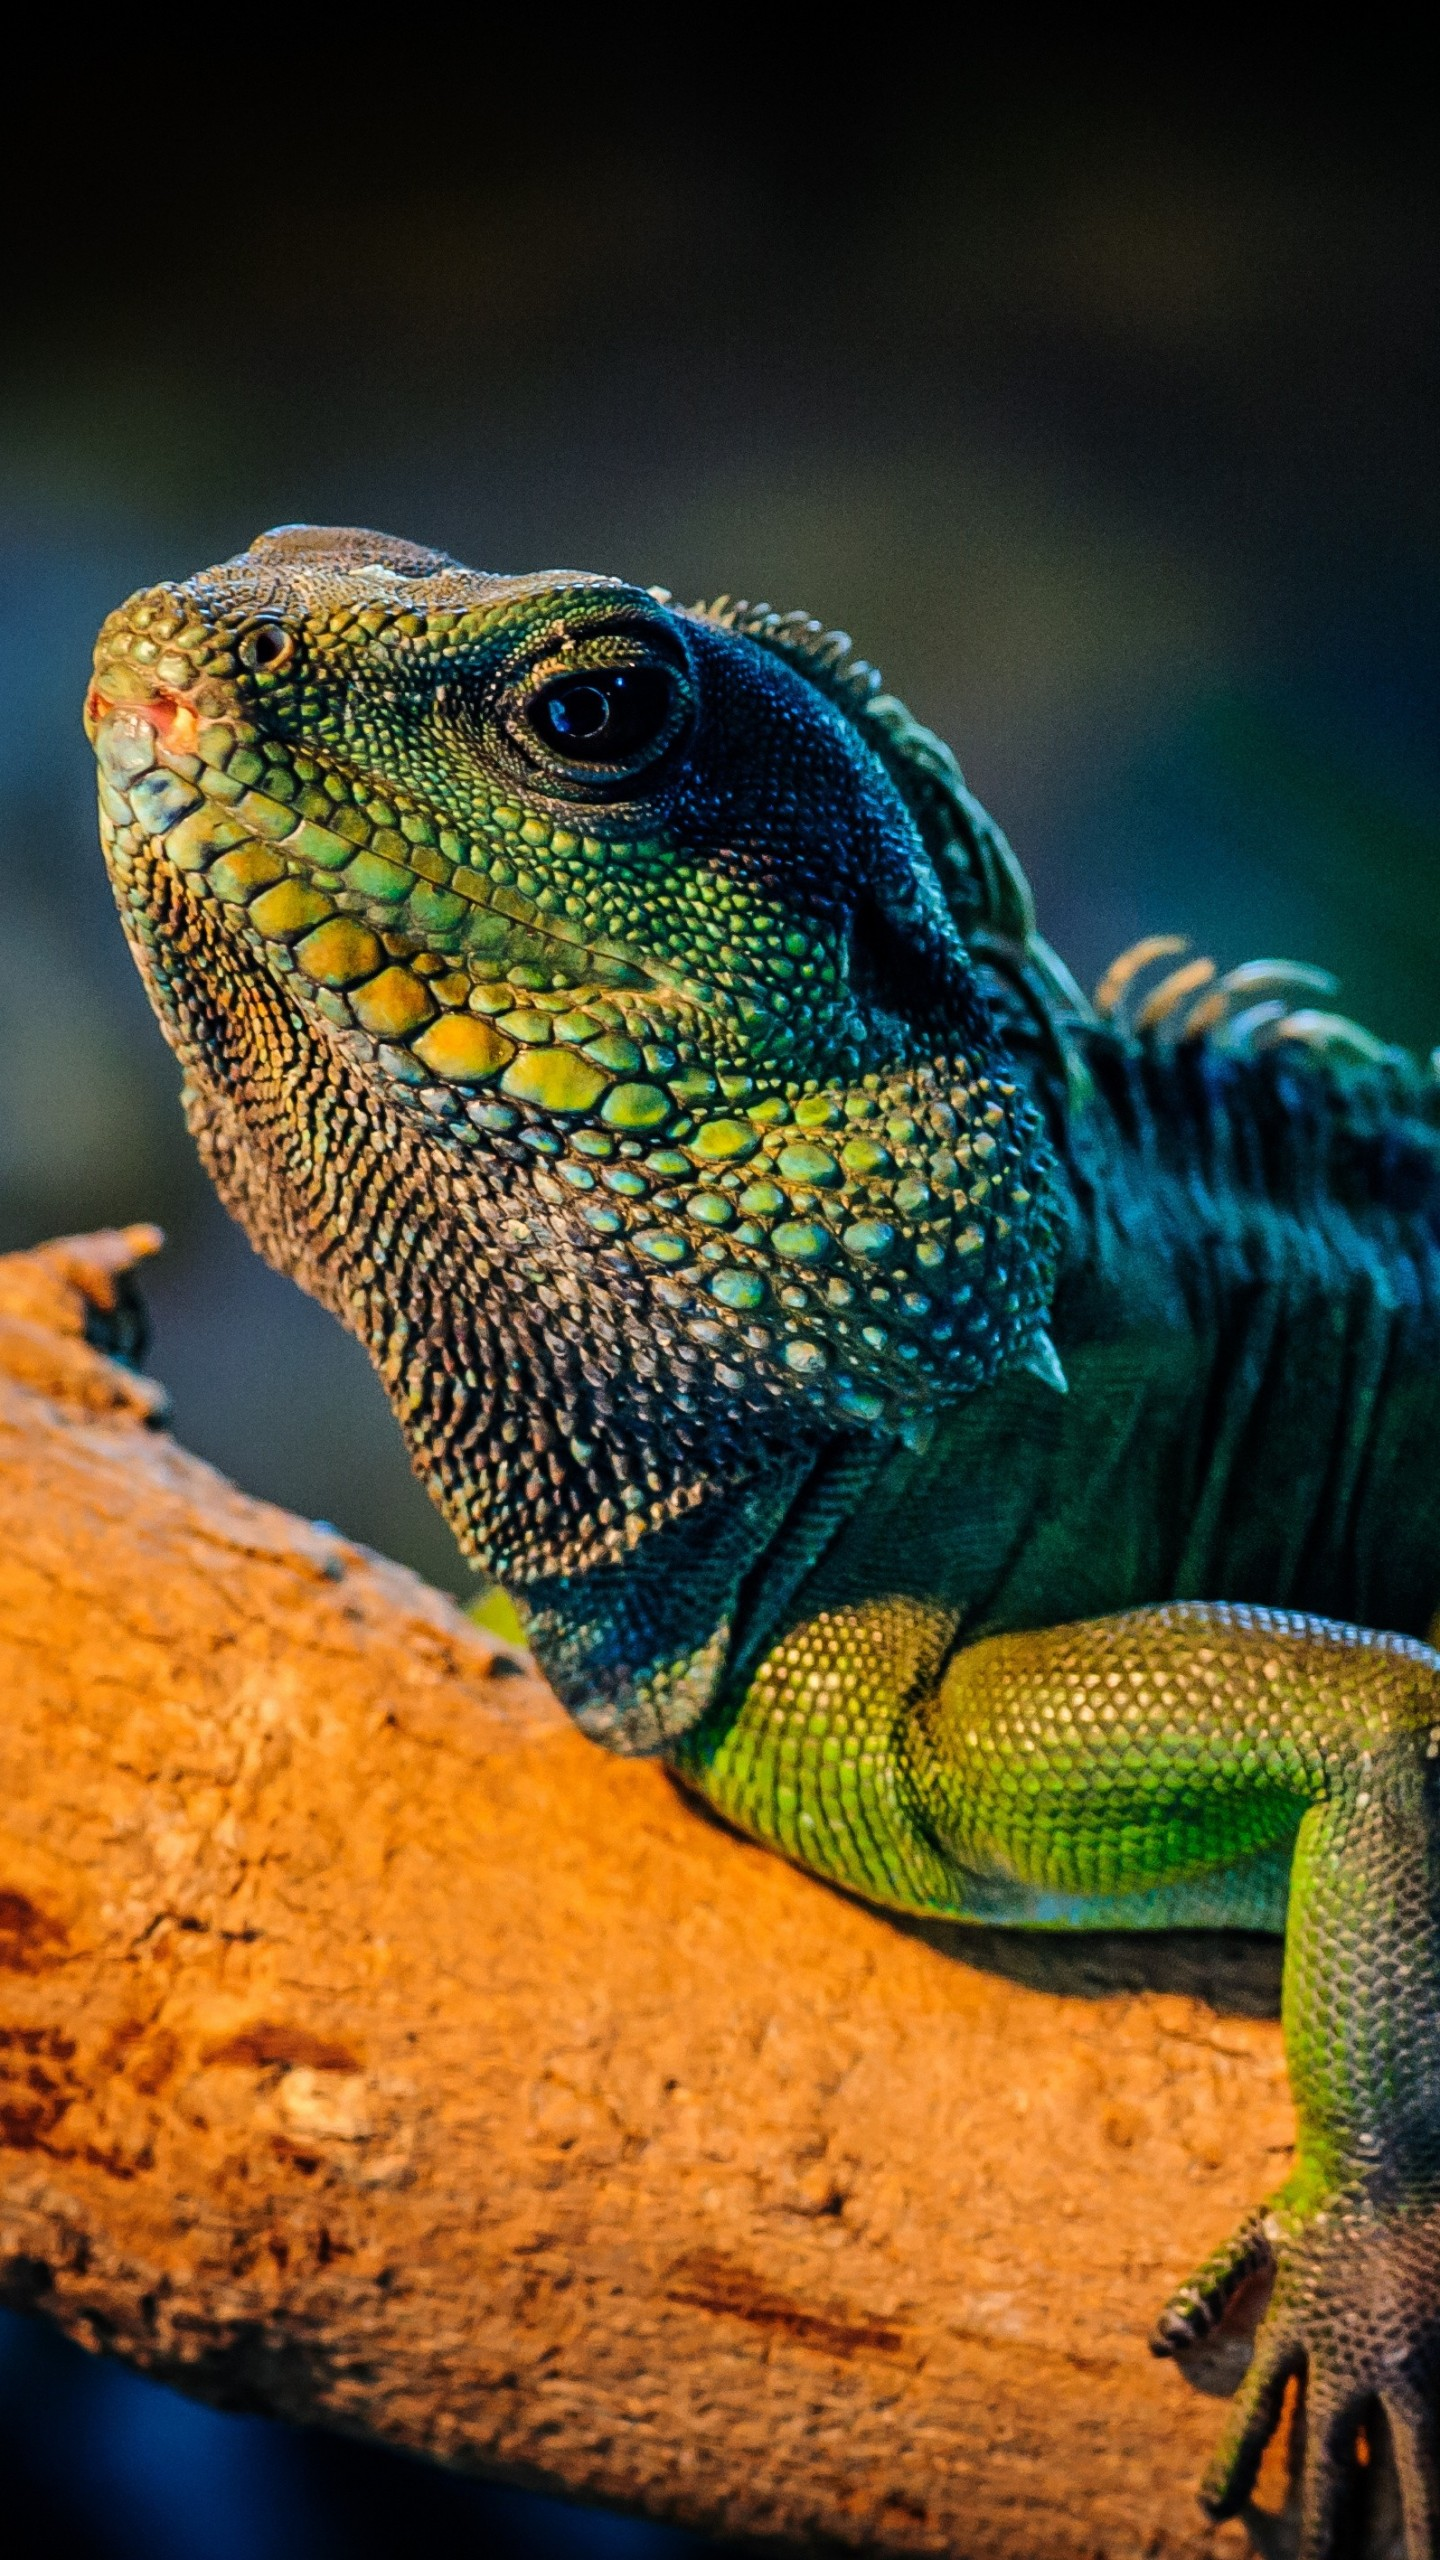 Cute Wallpapers With Quotes Hd Wallpaper Iguana Lizard Cute Animals Animals 4670